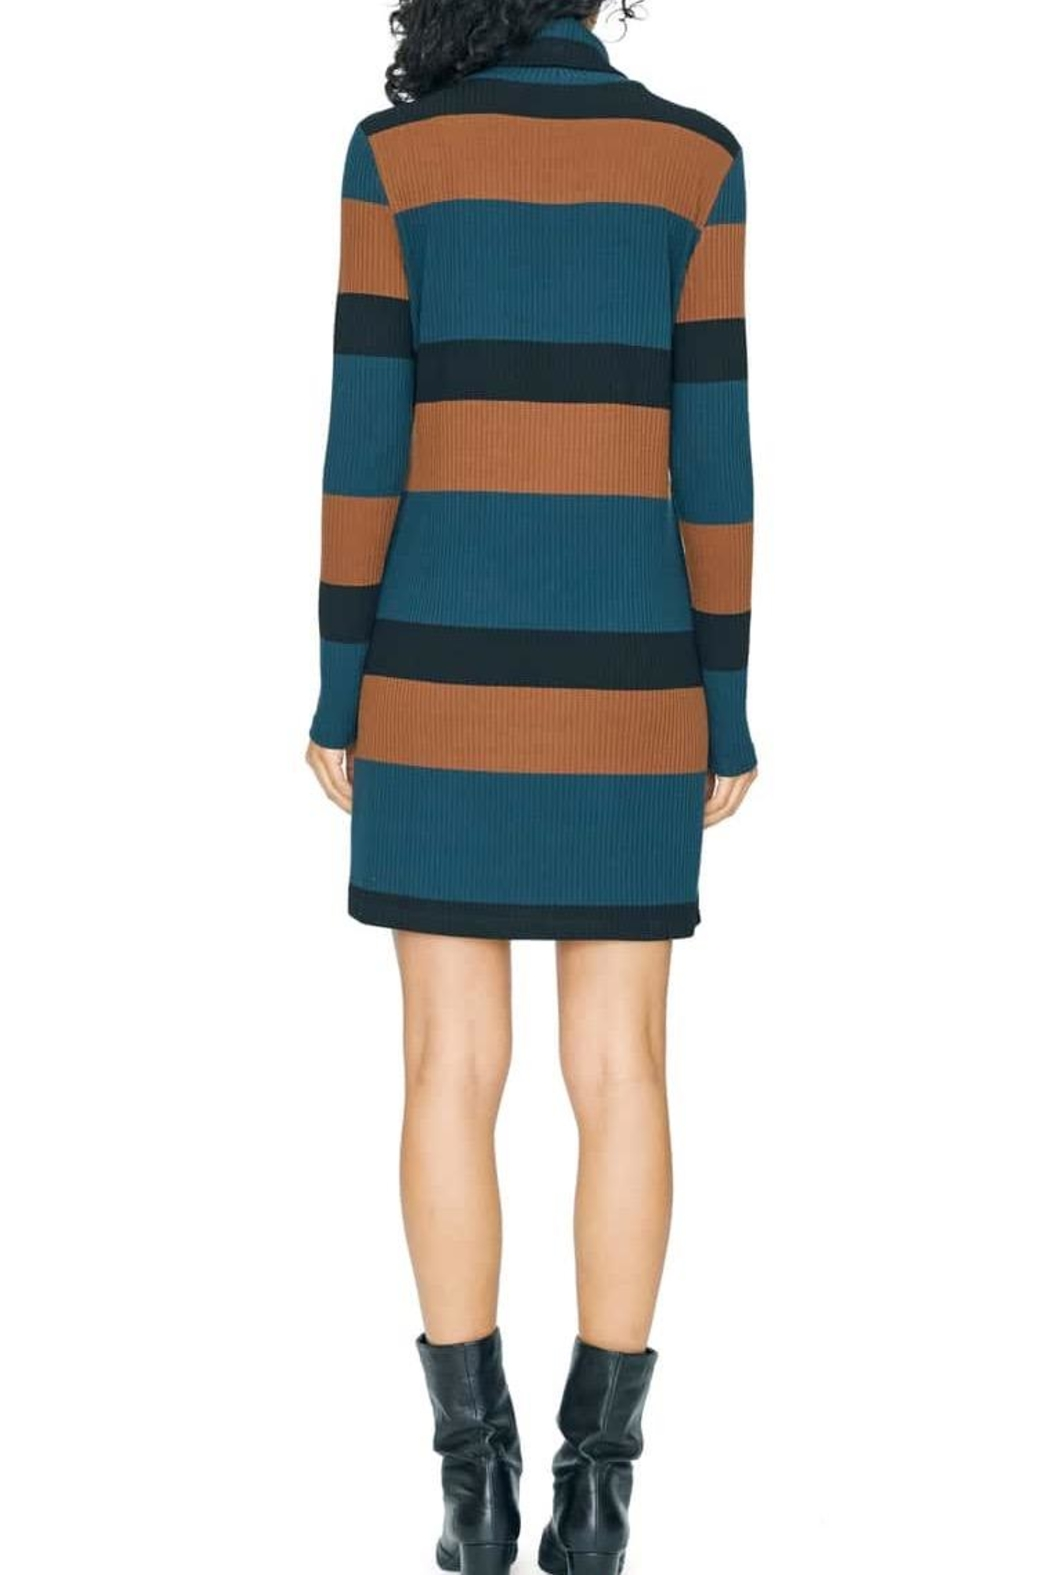 Sanctuary Turtleneck Sweater Dress - Front Full Image